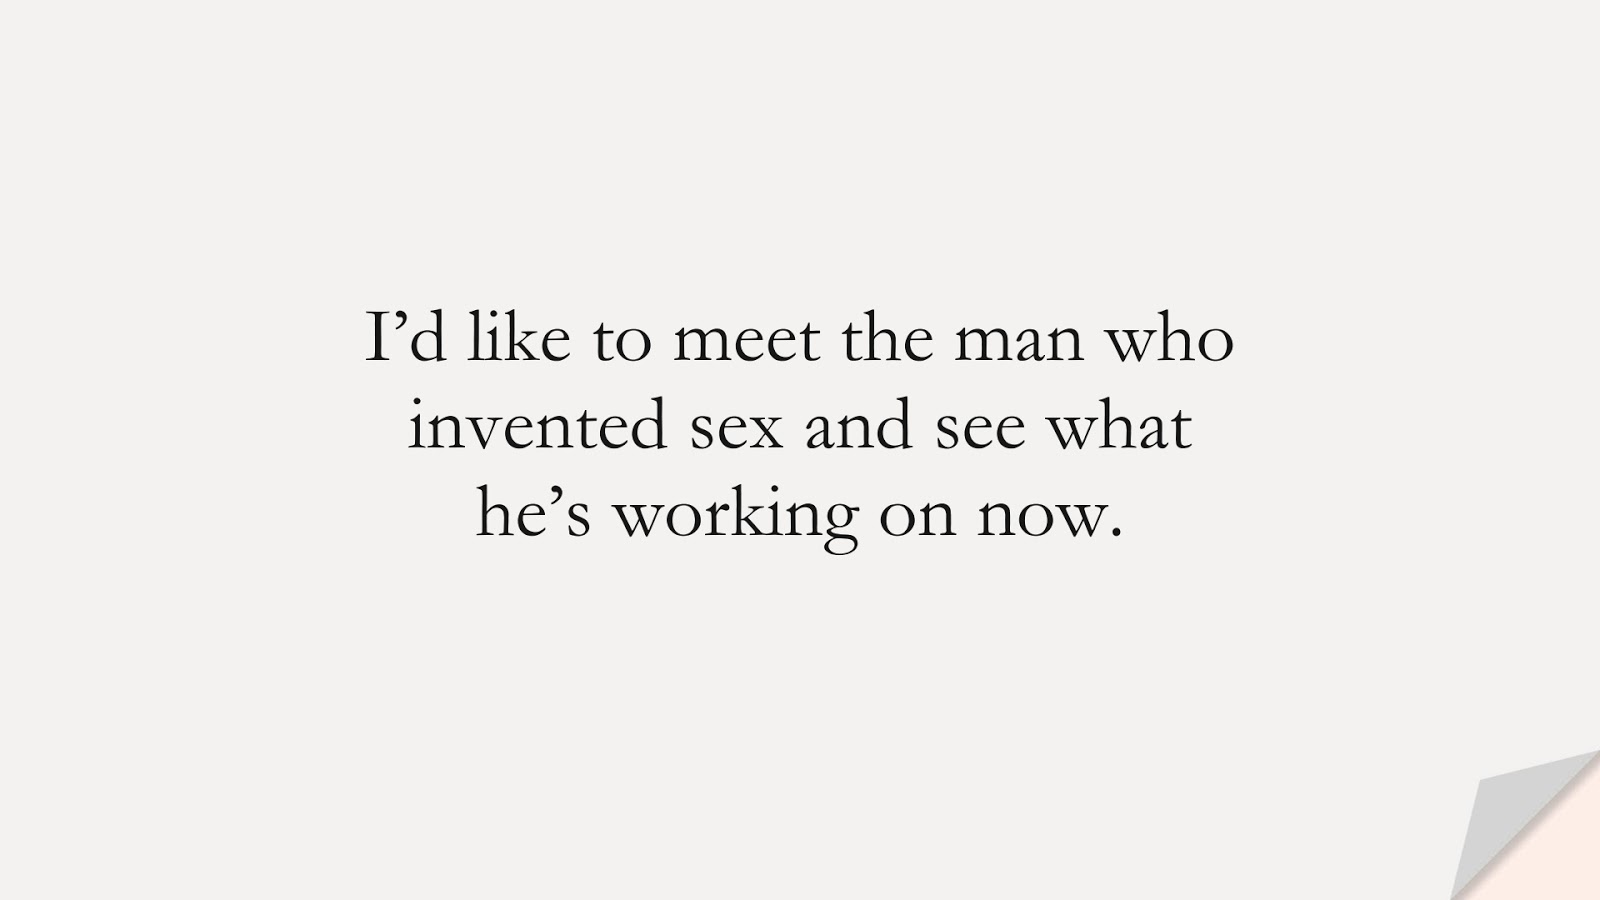 I'd like to meet the man who invented sex and see what he's working on now.FALSE